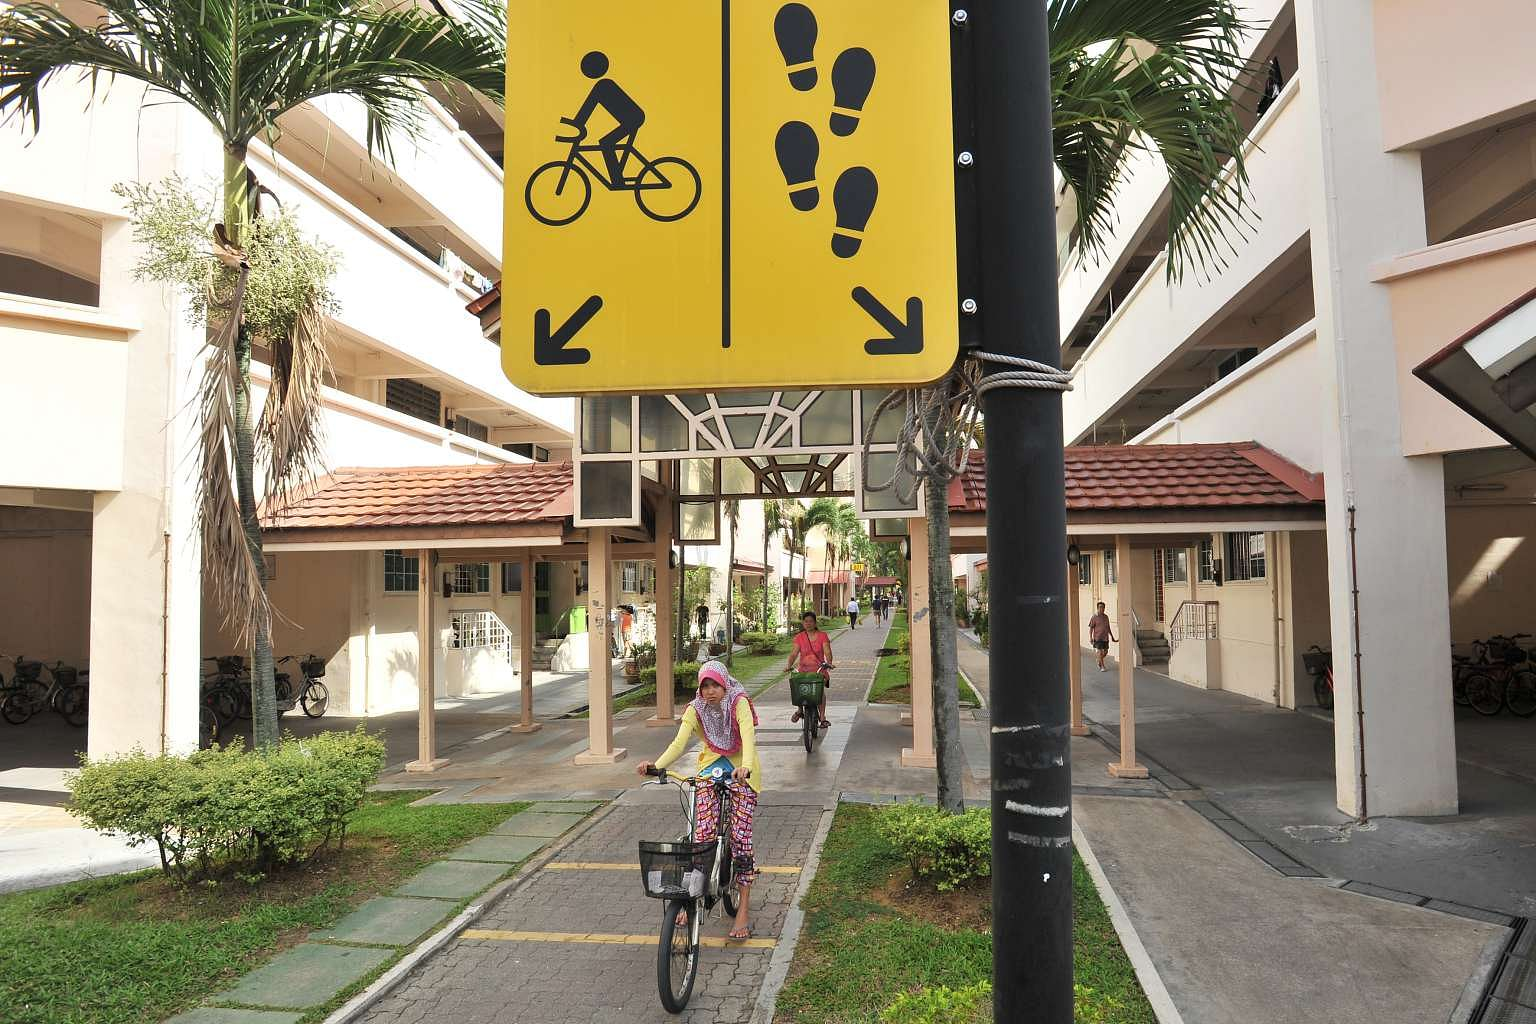 Notable progress under sustainable singapore blueprint over past notable progress under sustainable singapore blueprint over past year masagos environment news top stories the straits times malvernweather Choice Image